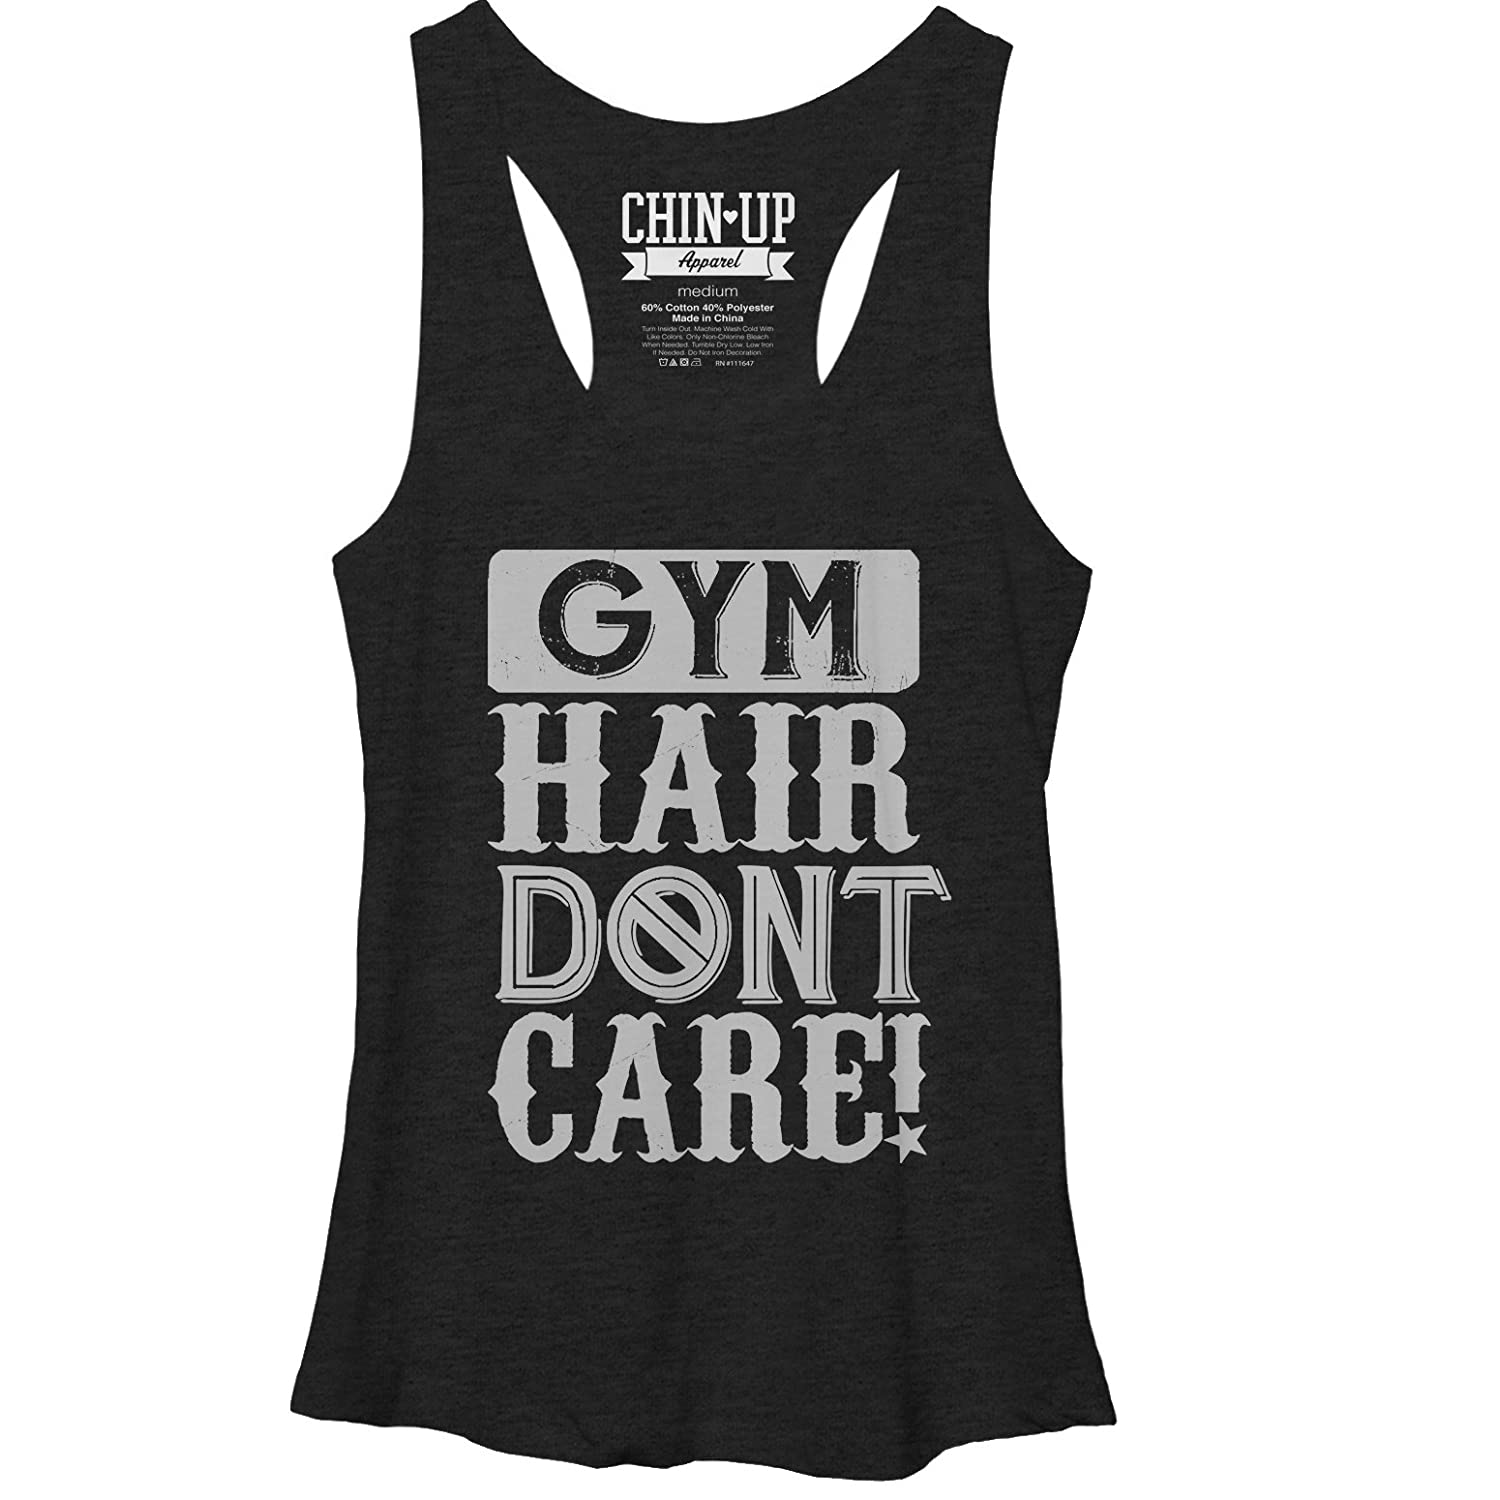 Chin Up Women's Gym Hair Don't Care Racerback Tank Top